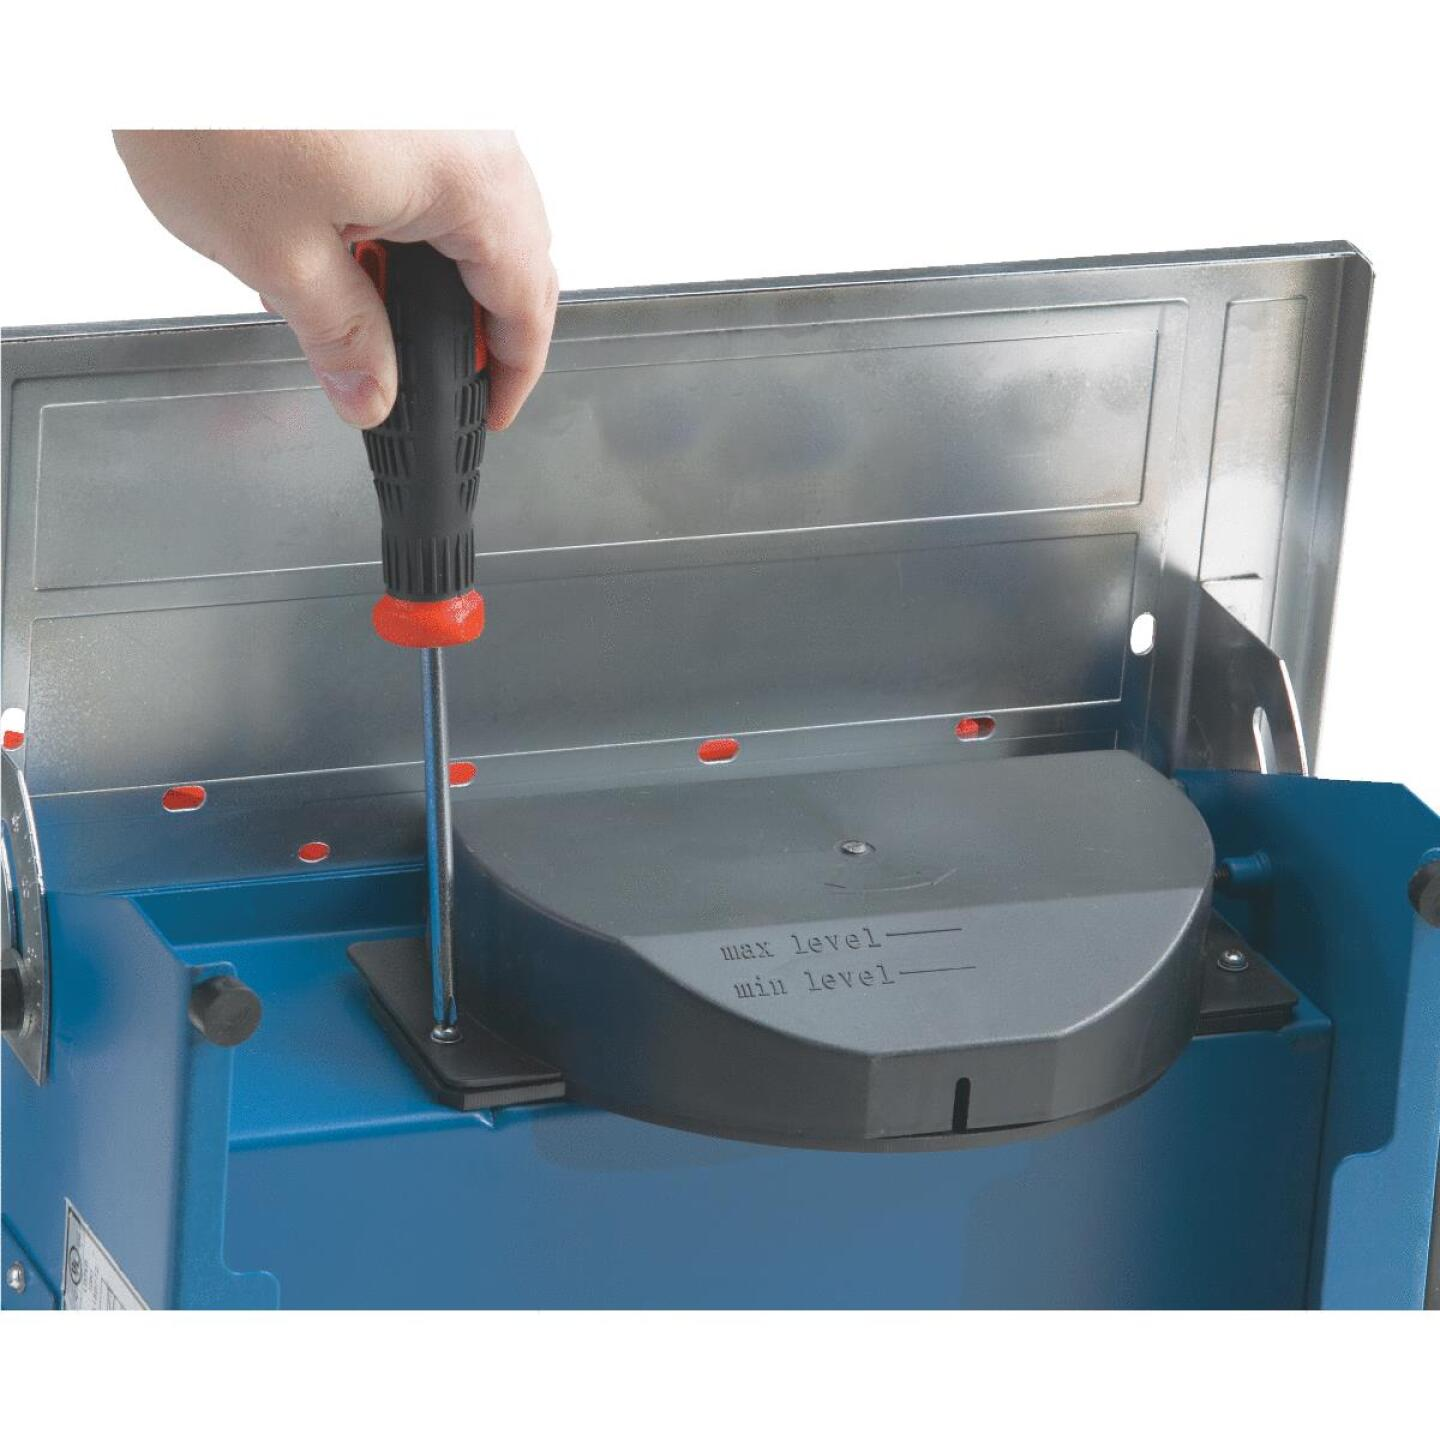 Project Pro 7 In. Portable Tile Saw Image 6